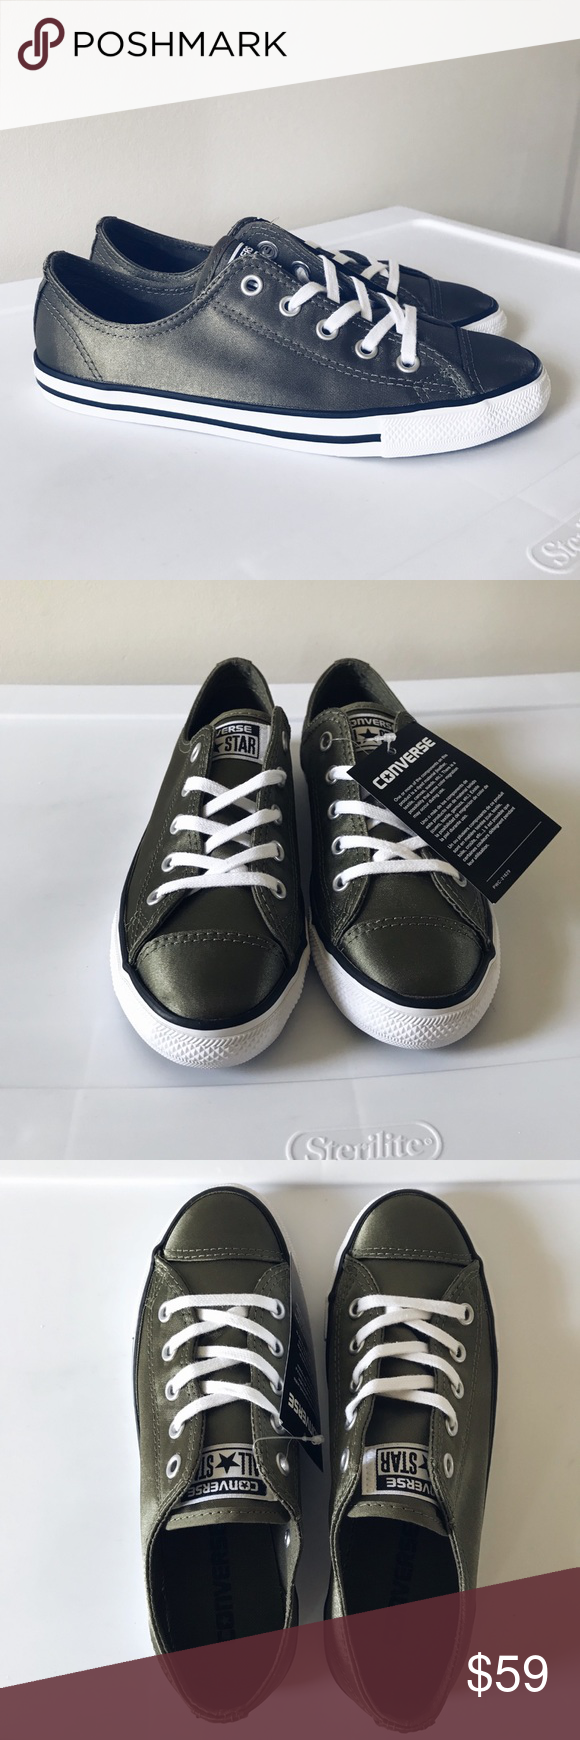 Converse Satin Olive Green Dainty Low Tops NWT Brand new with box Converse  olive green satin dainty low top sneakers. Women s Size 5 Ships Double  Boxed Pet ... f0c7ee911